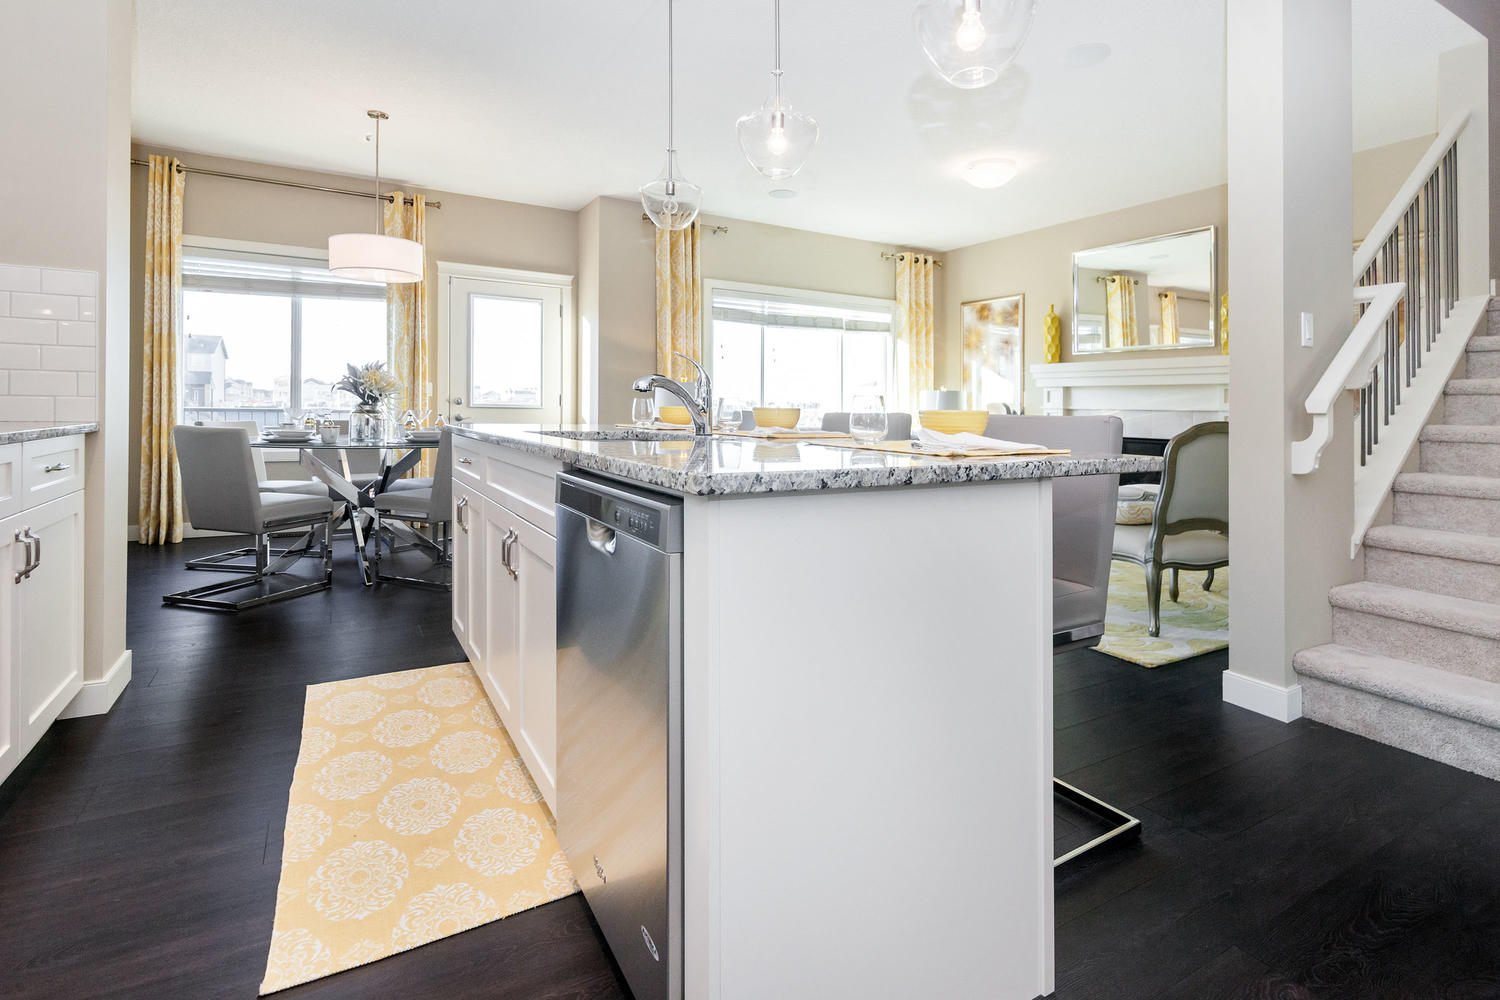 kitchen island in open concept kitchen, dining room, and living room pacesetter front drive home.